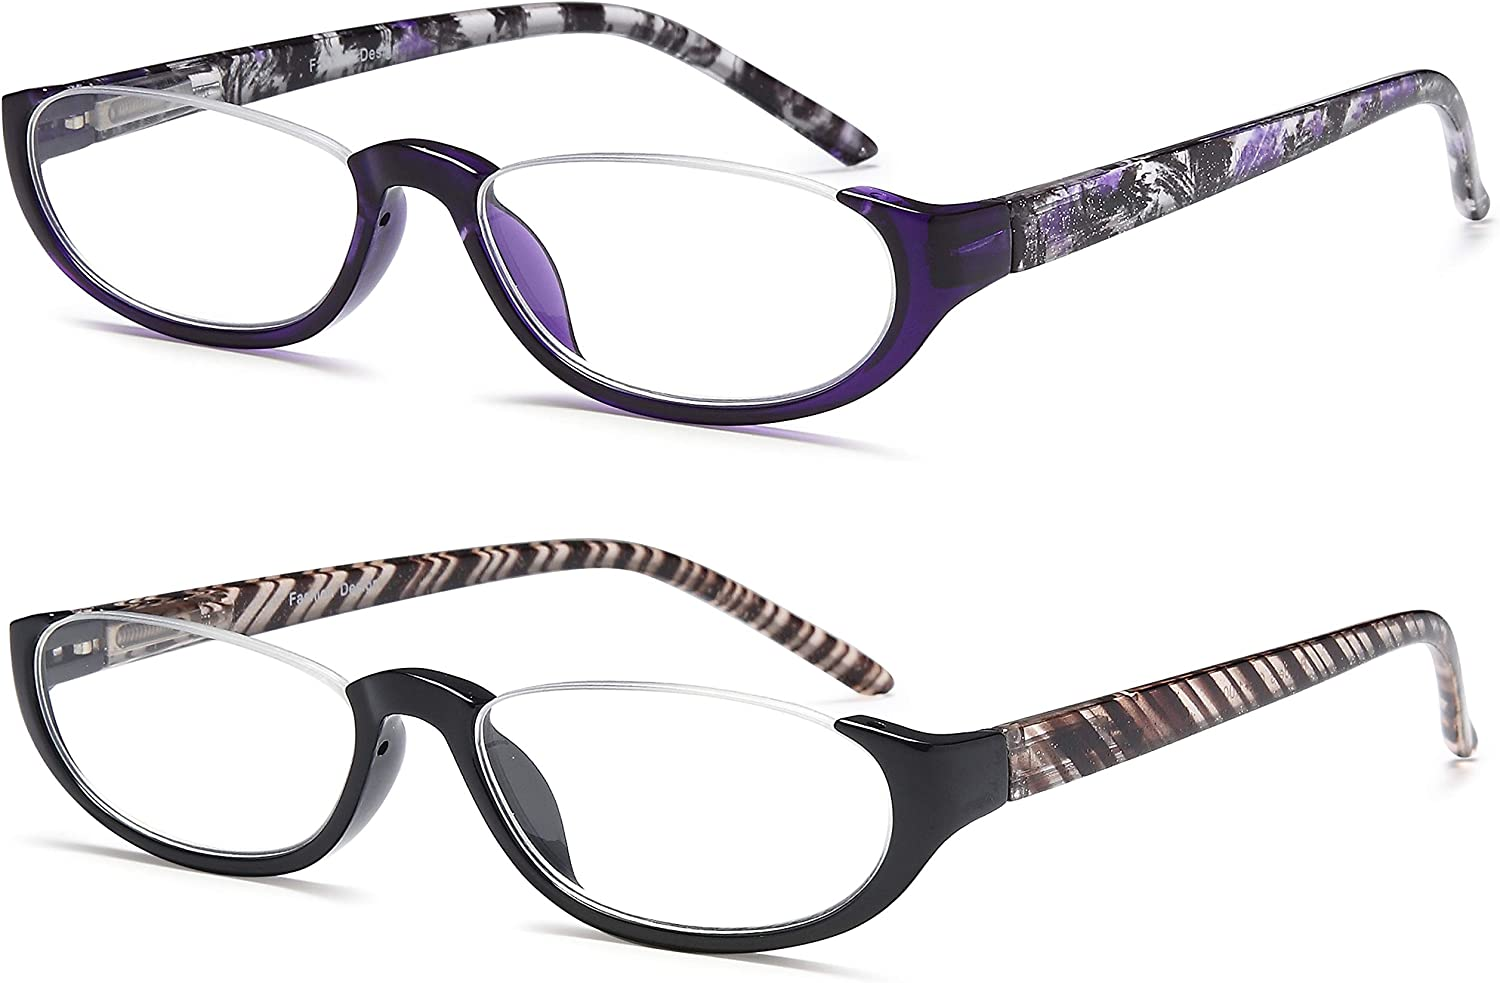 EYEURL Computer Reading Glasses Half Moon for Women 22020 Pack Blue Light  Blocking Readers with Clear Vision Spring Hinge Eyeglasses22020.20 Anti Glare ...